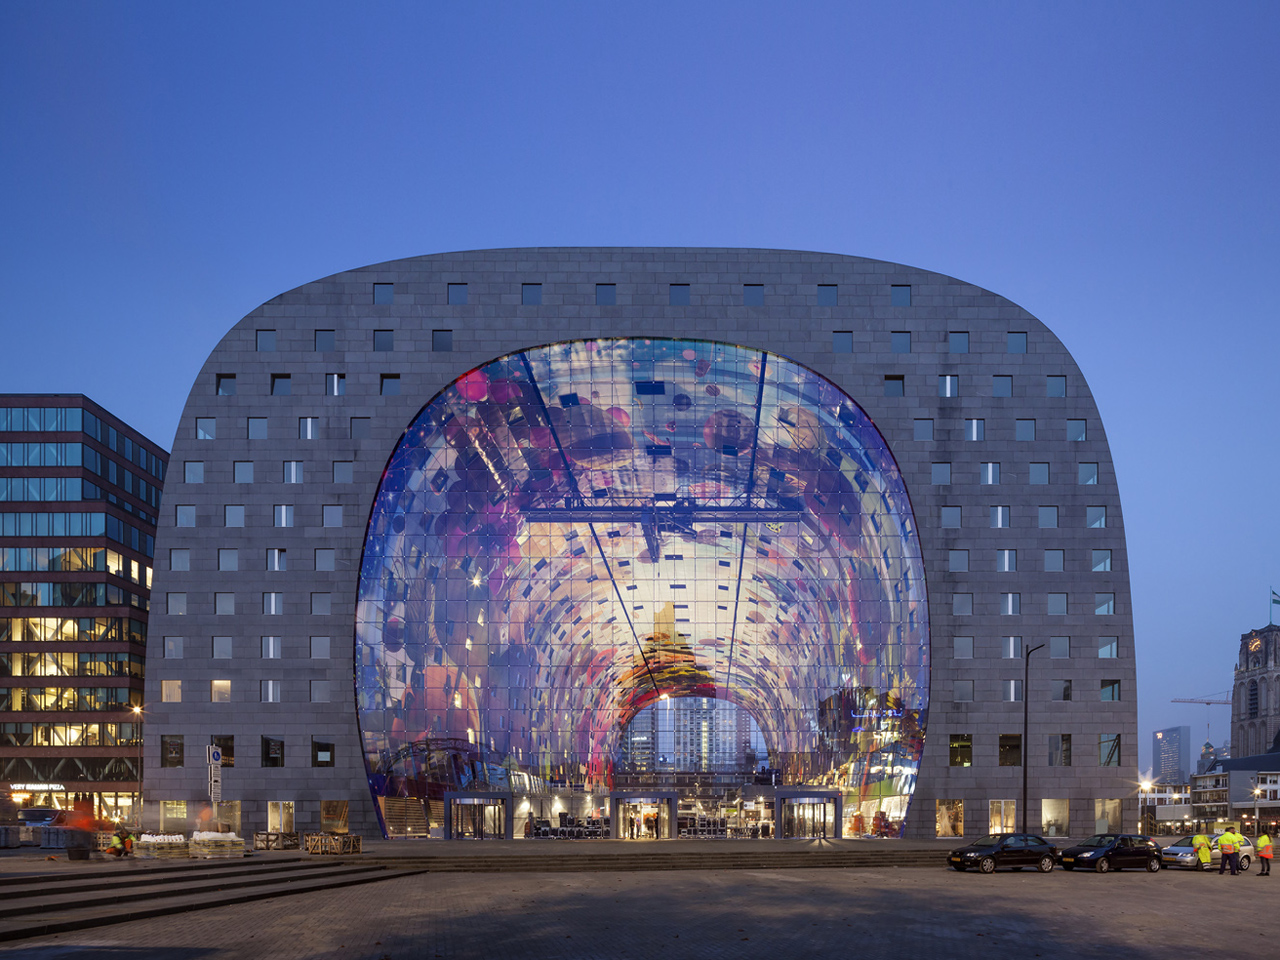 Markthal reaches its first birthday, receives more visitors than Eiffel tower